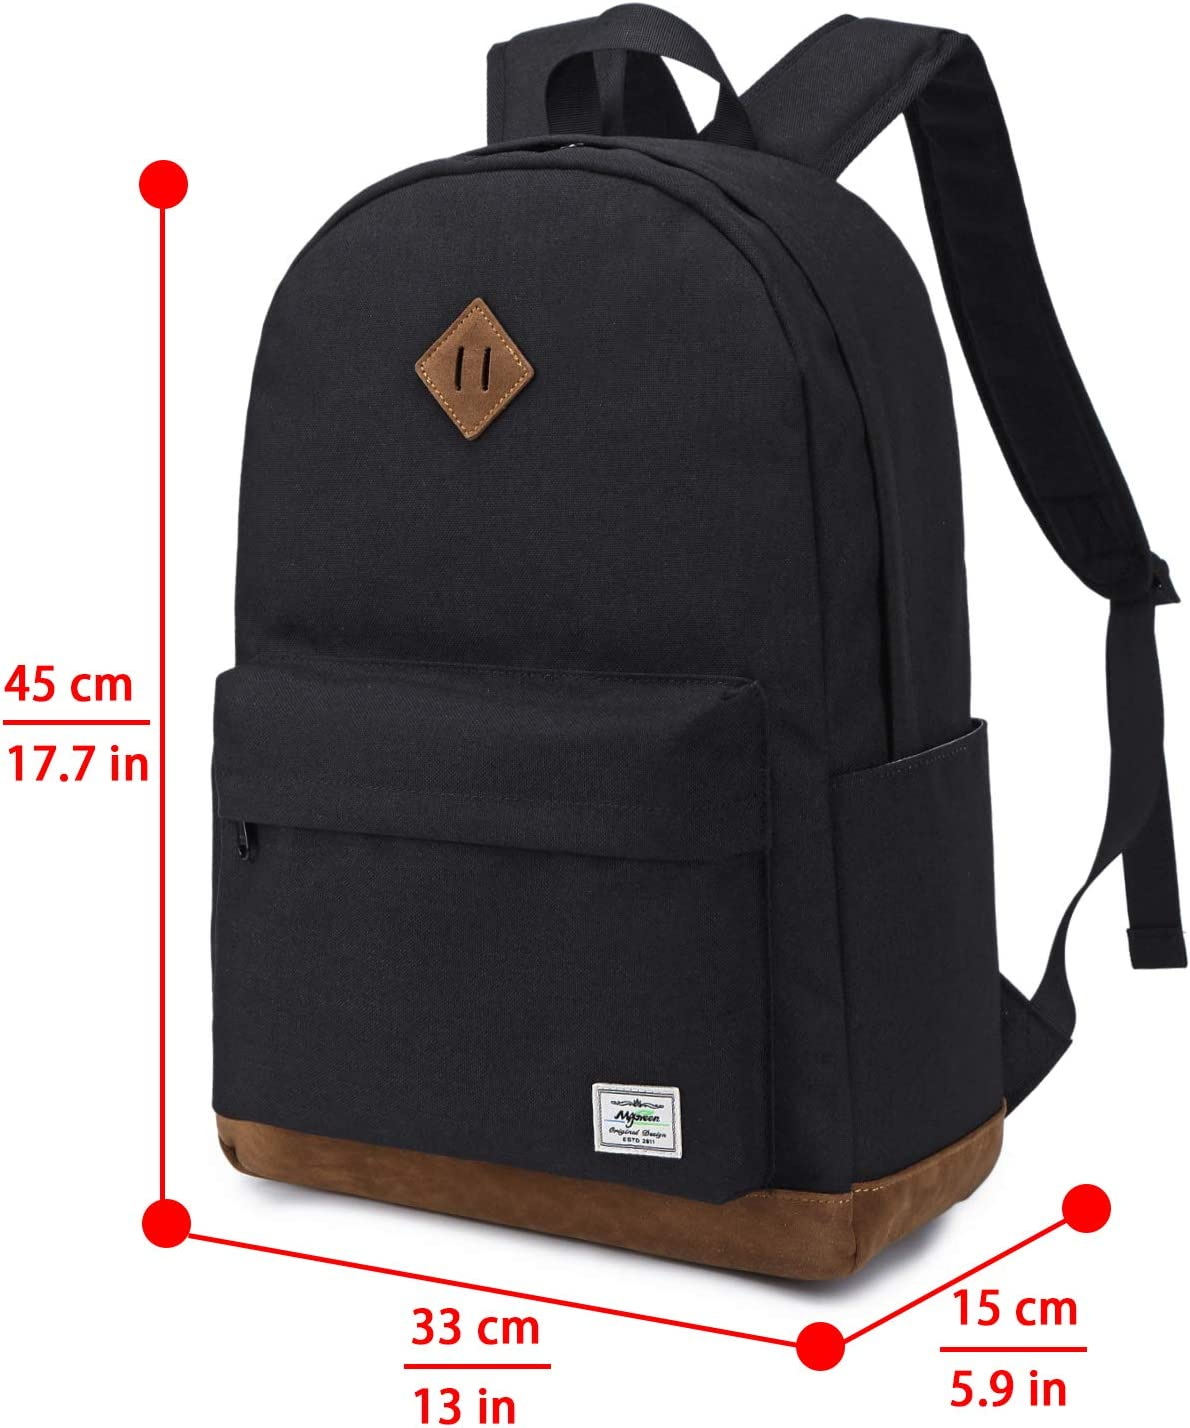 Travel Daypack Fits 14 Inch Laptop for Men /& Women El-fmly Classic Water Resistant School Backpack Black